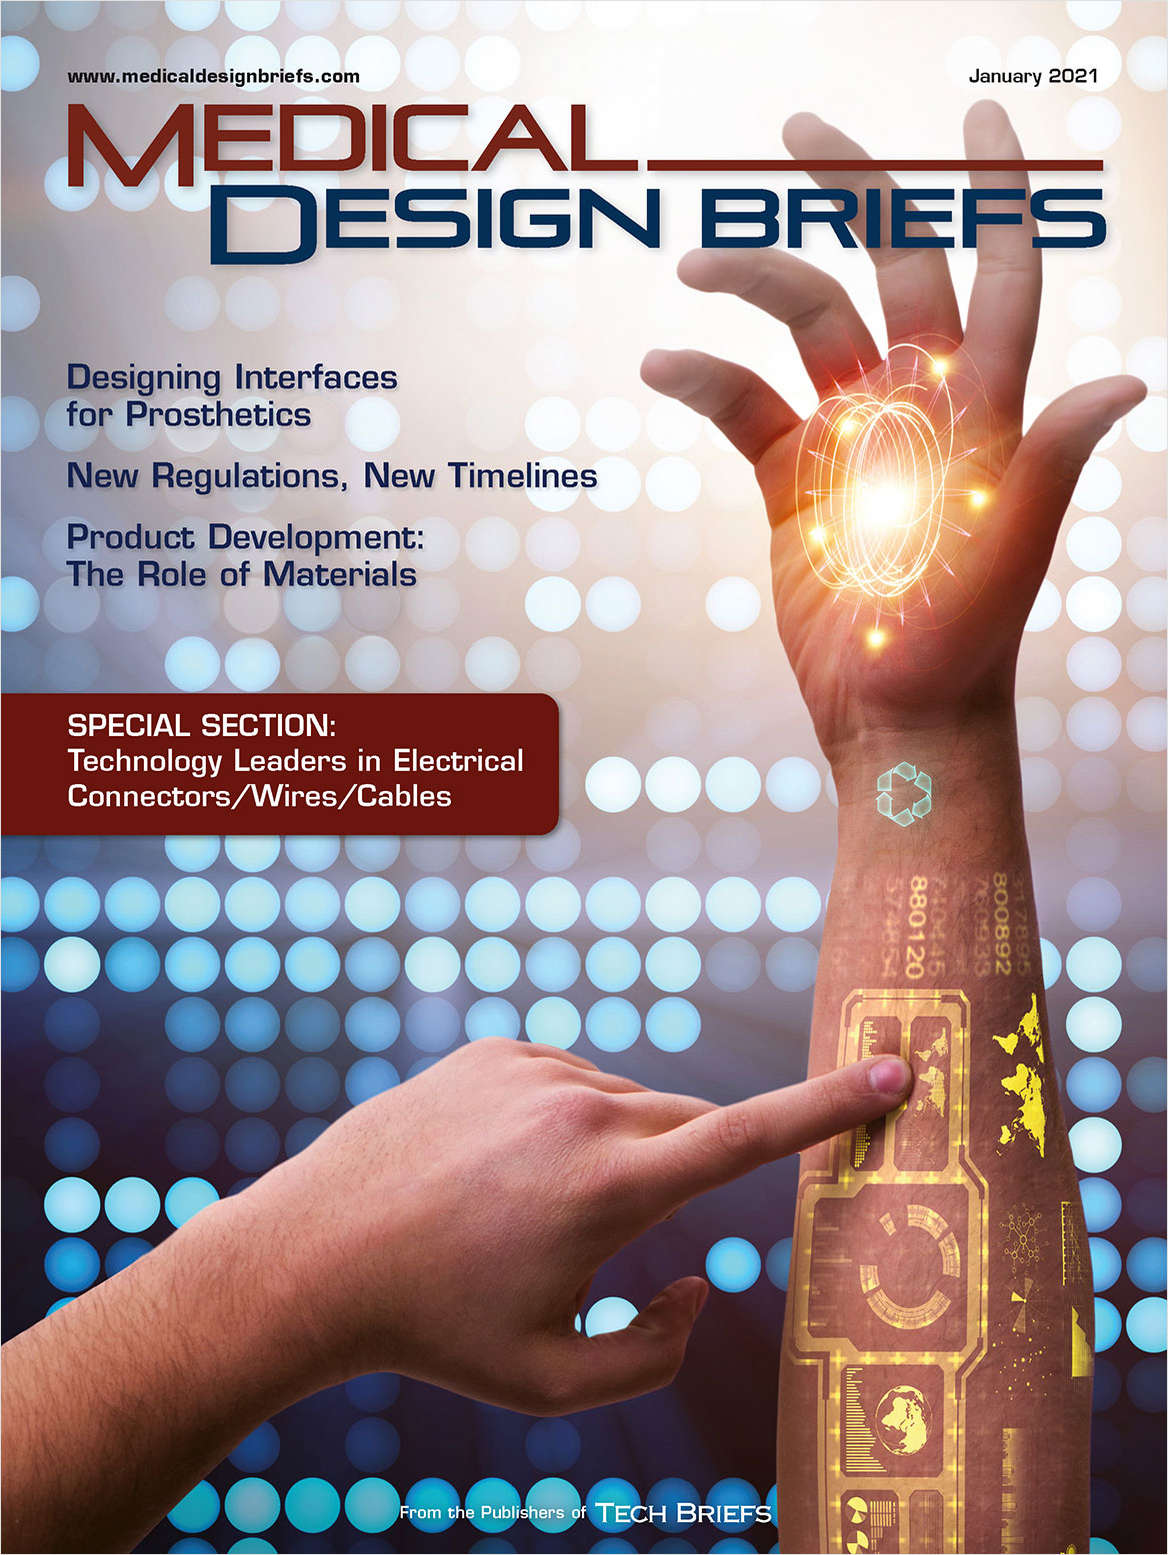 Medical Design Briefs